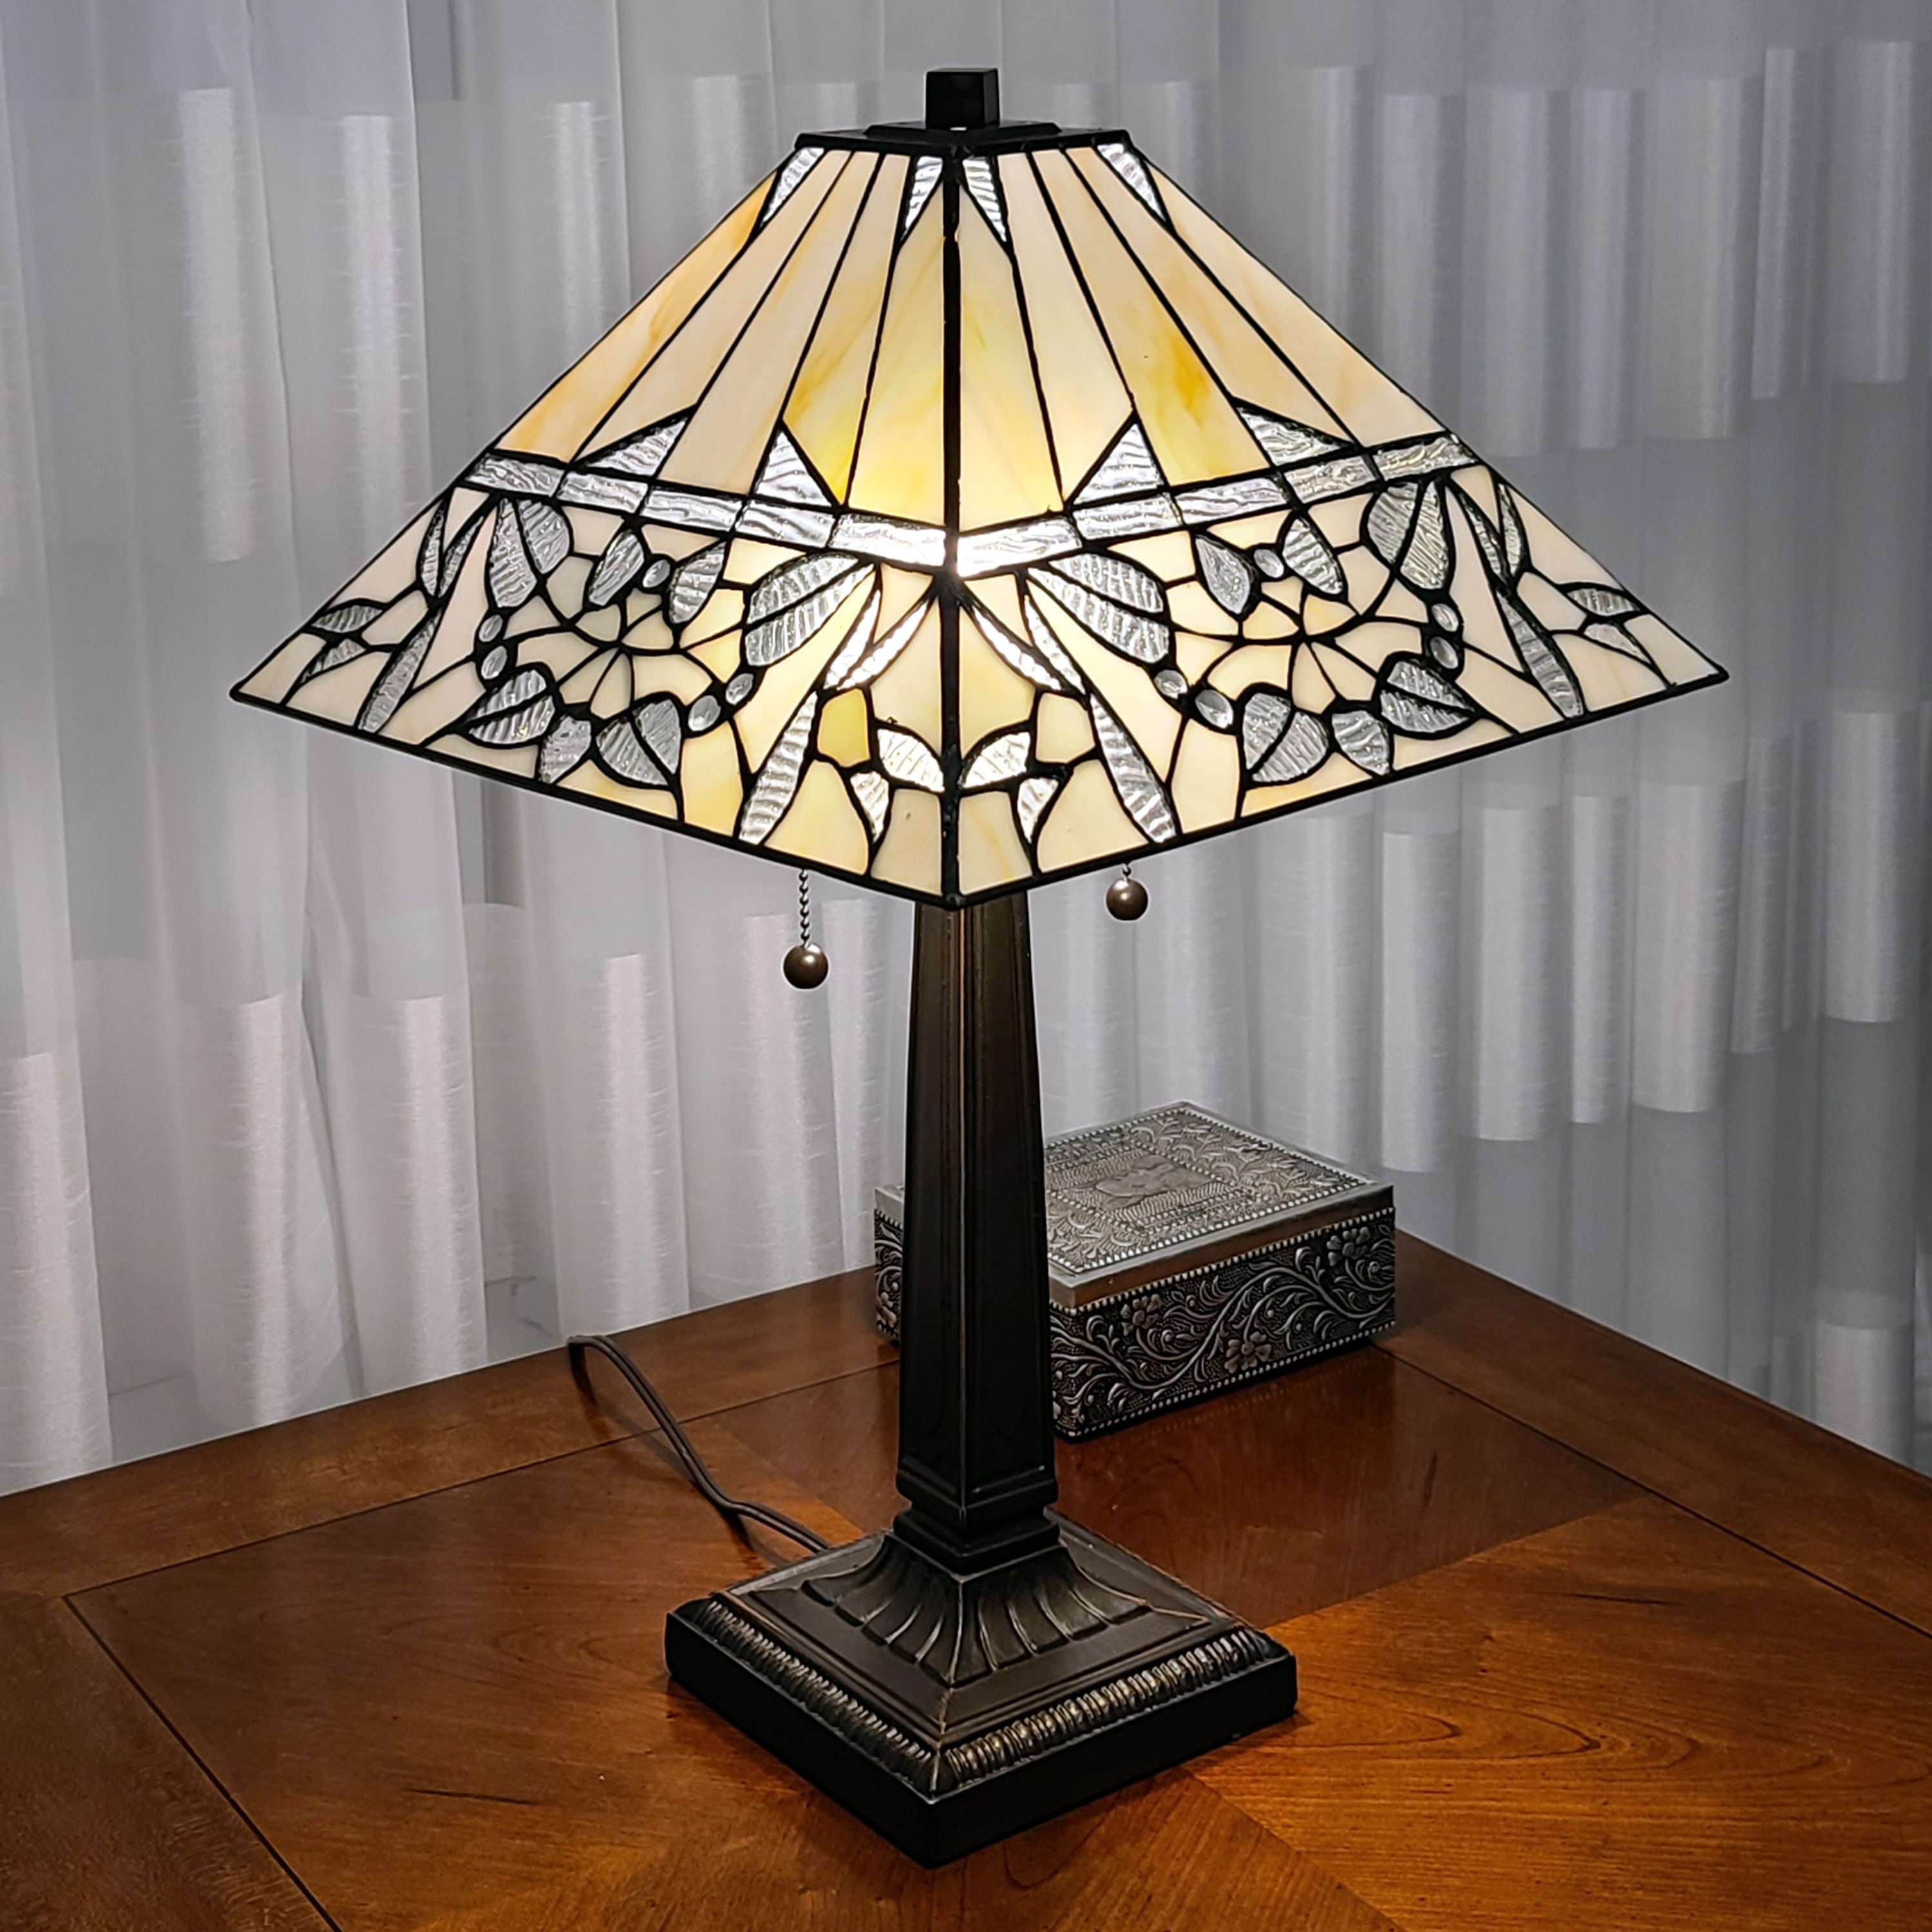 Shop Black Friday Deals On Tiffany Style Table Lamp Mission 22 Tall Stained Glass Ivory Brown Antique Vintage Light Am308tl14b Amora Lighting Overstock 30642099